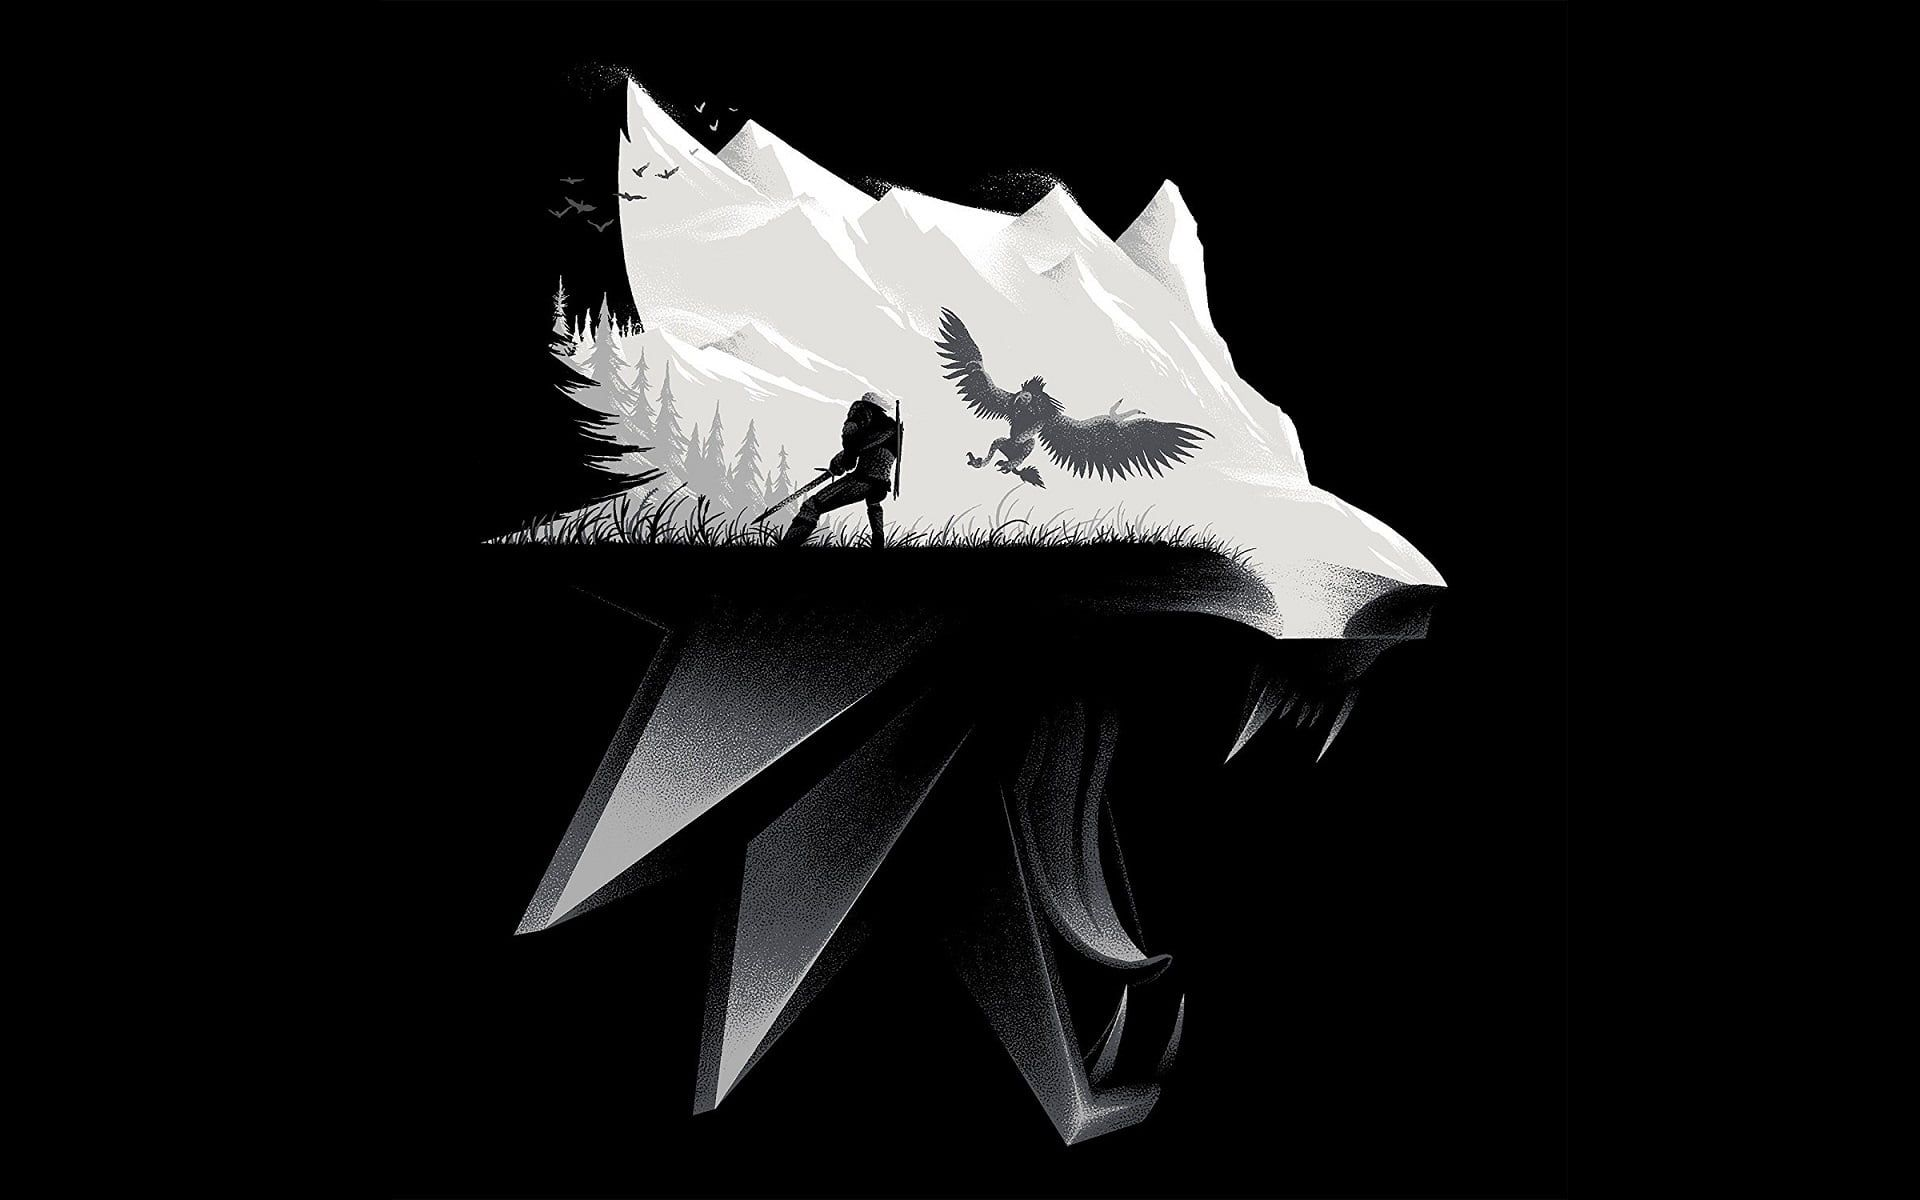 Black And White Wolf Illustration The Witcher Video Games Wolf The Witcher 3 Wild Hunt 1080p Wallpaper Hdwall Wolf Illustration Wolf Wallpaper The Witcher